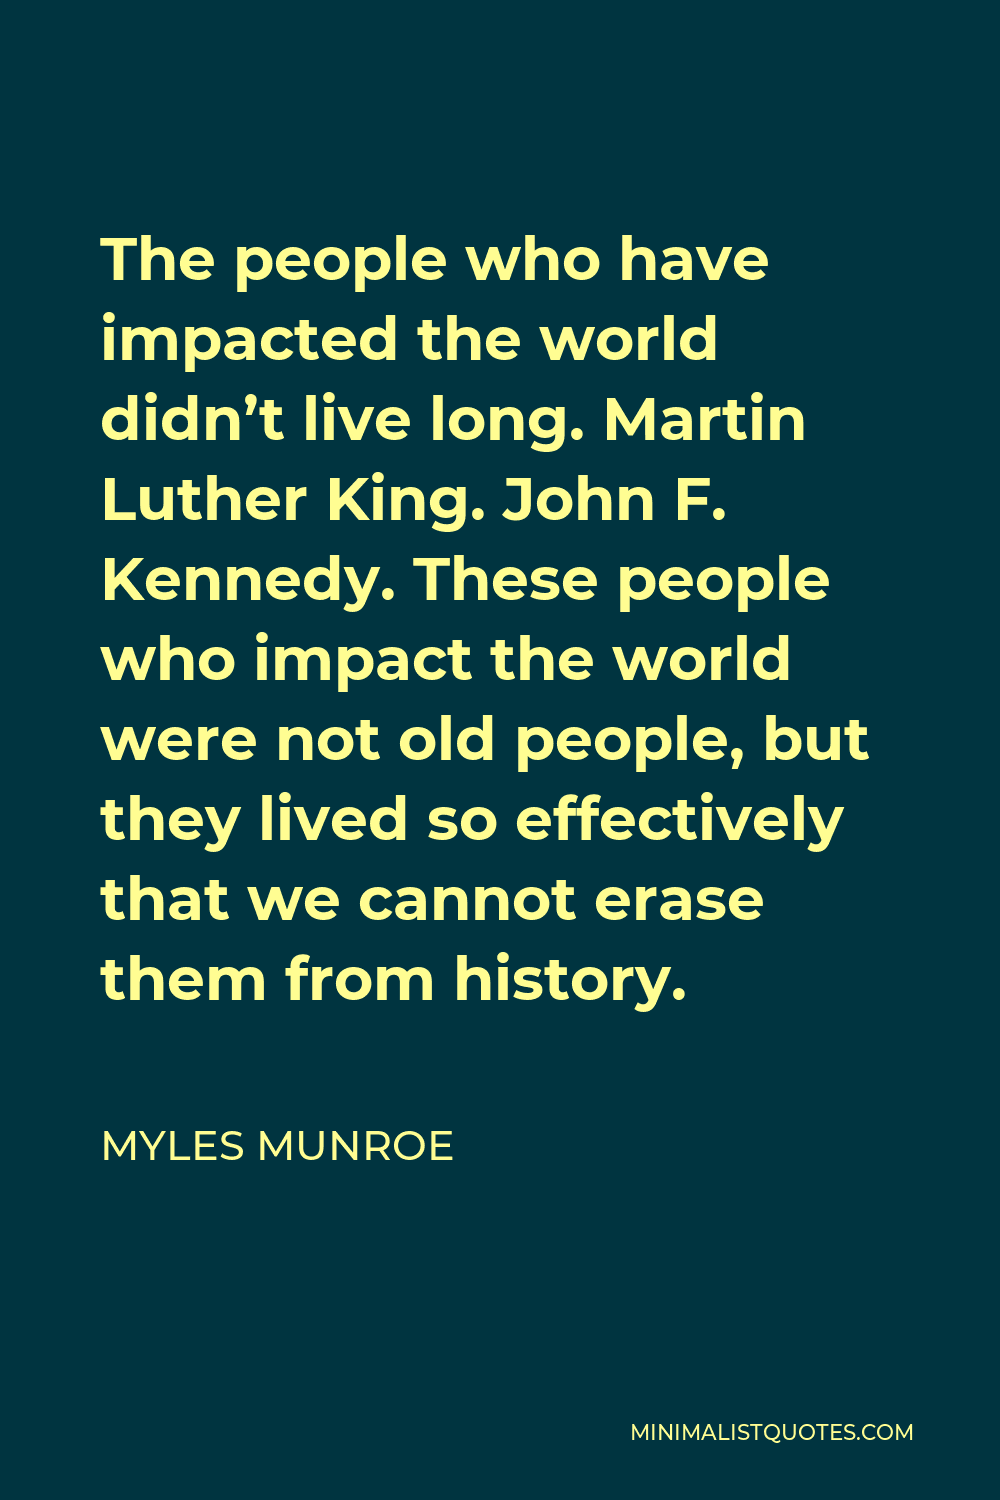 Myles Munroe Quote - The people who have impacted the world didn't live long. Martin Luther King. John F. Kennedy. These people who impact the world were not old people, but they lived so effectively that we cannot erase them from history.